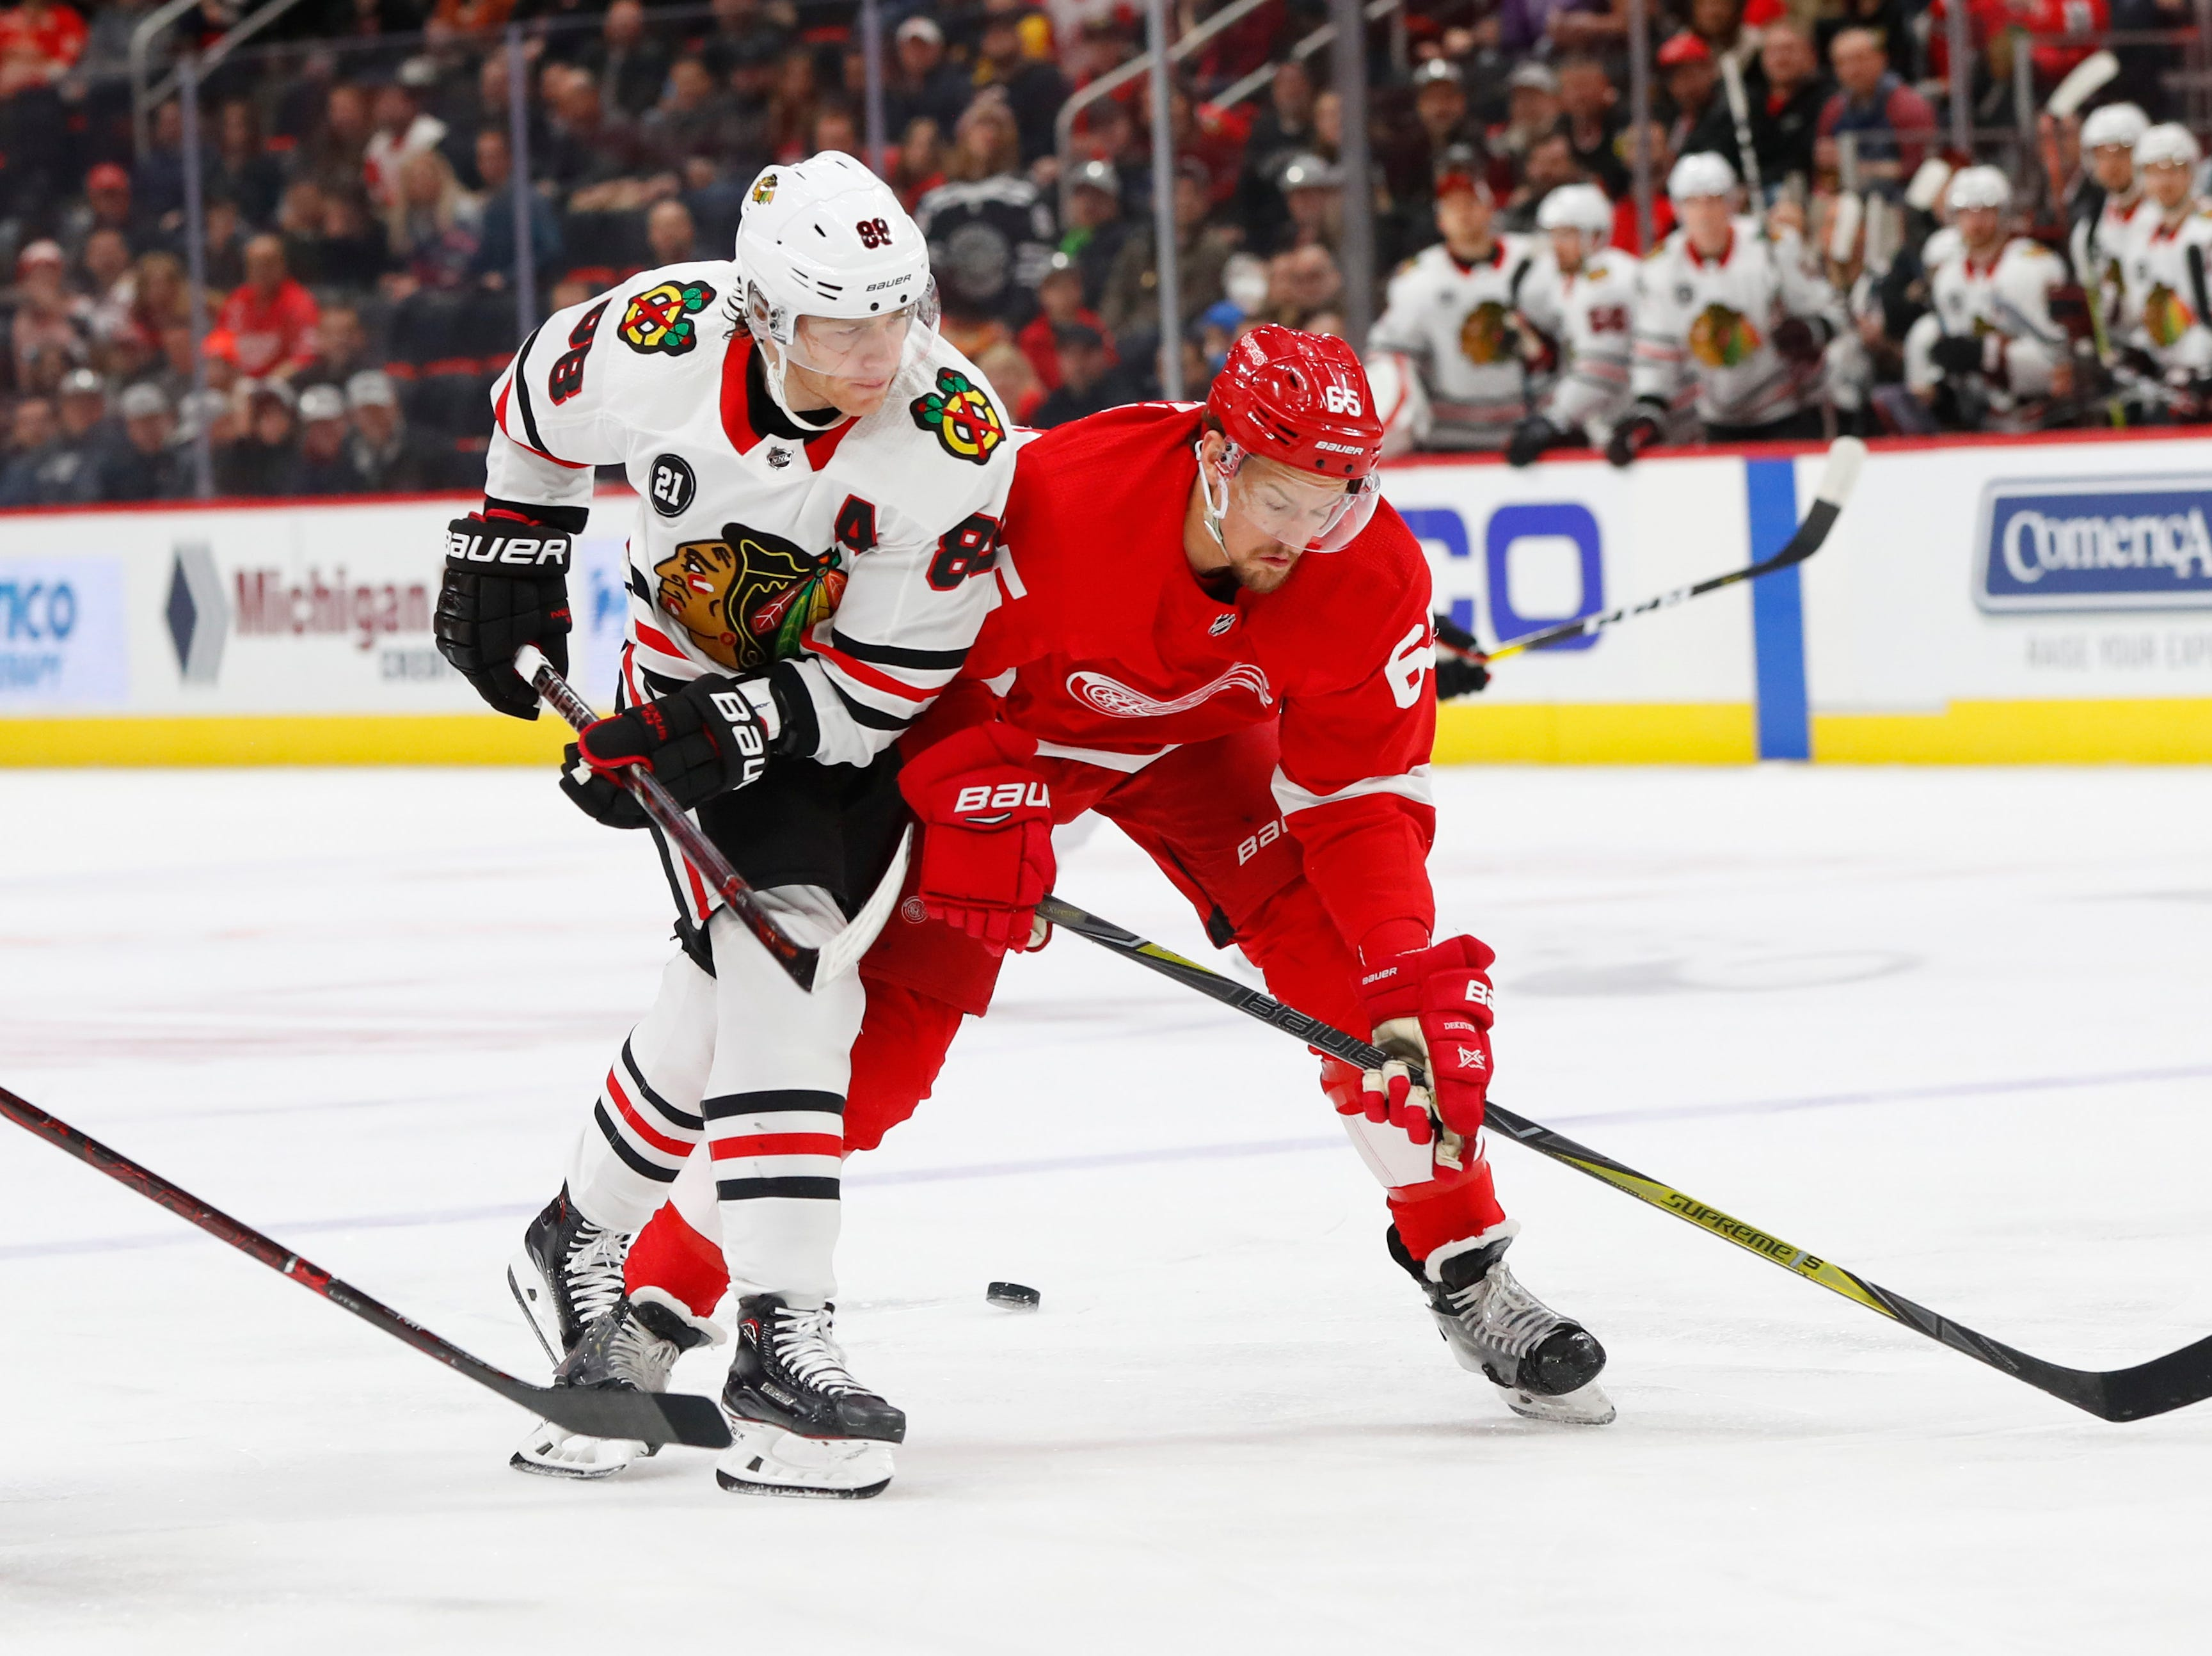 Detroit Red Wings defenseman Danny DeKeyser, right, knocks Chicago Blackhawks right wing Patrick Kane, left, off the puck in the first period of an NHL hockey game Wednesday, Feb. 20, 2019, in Detroit.